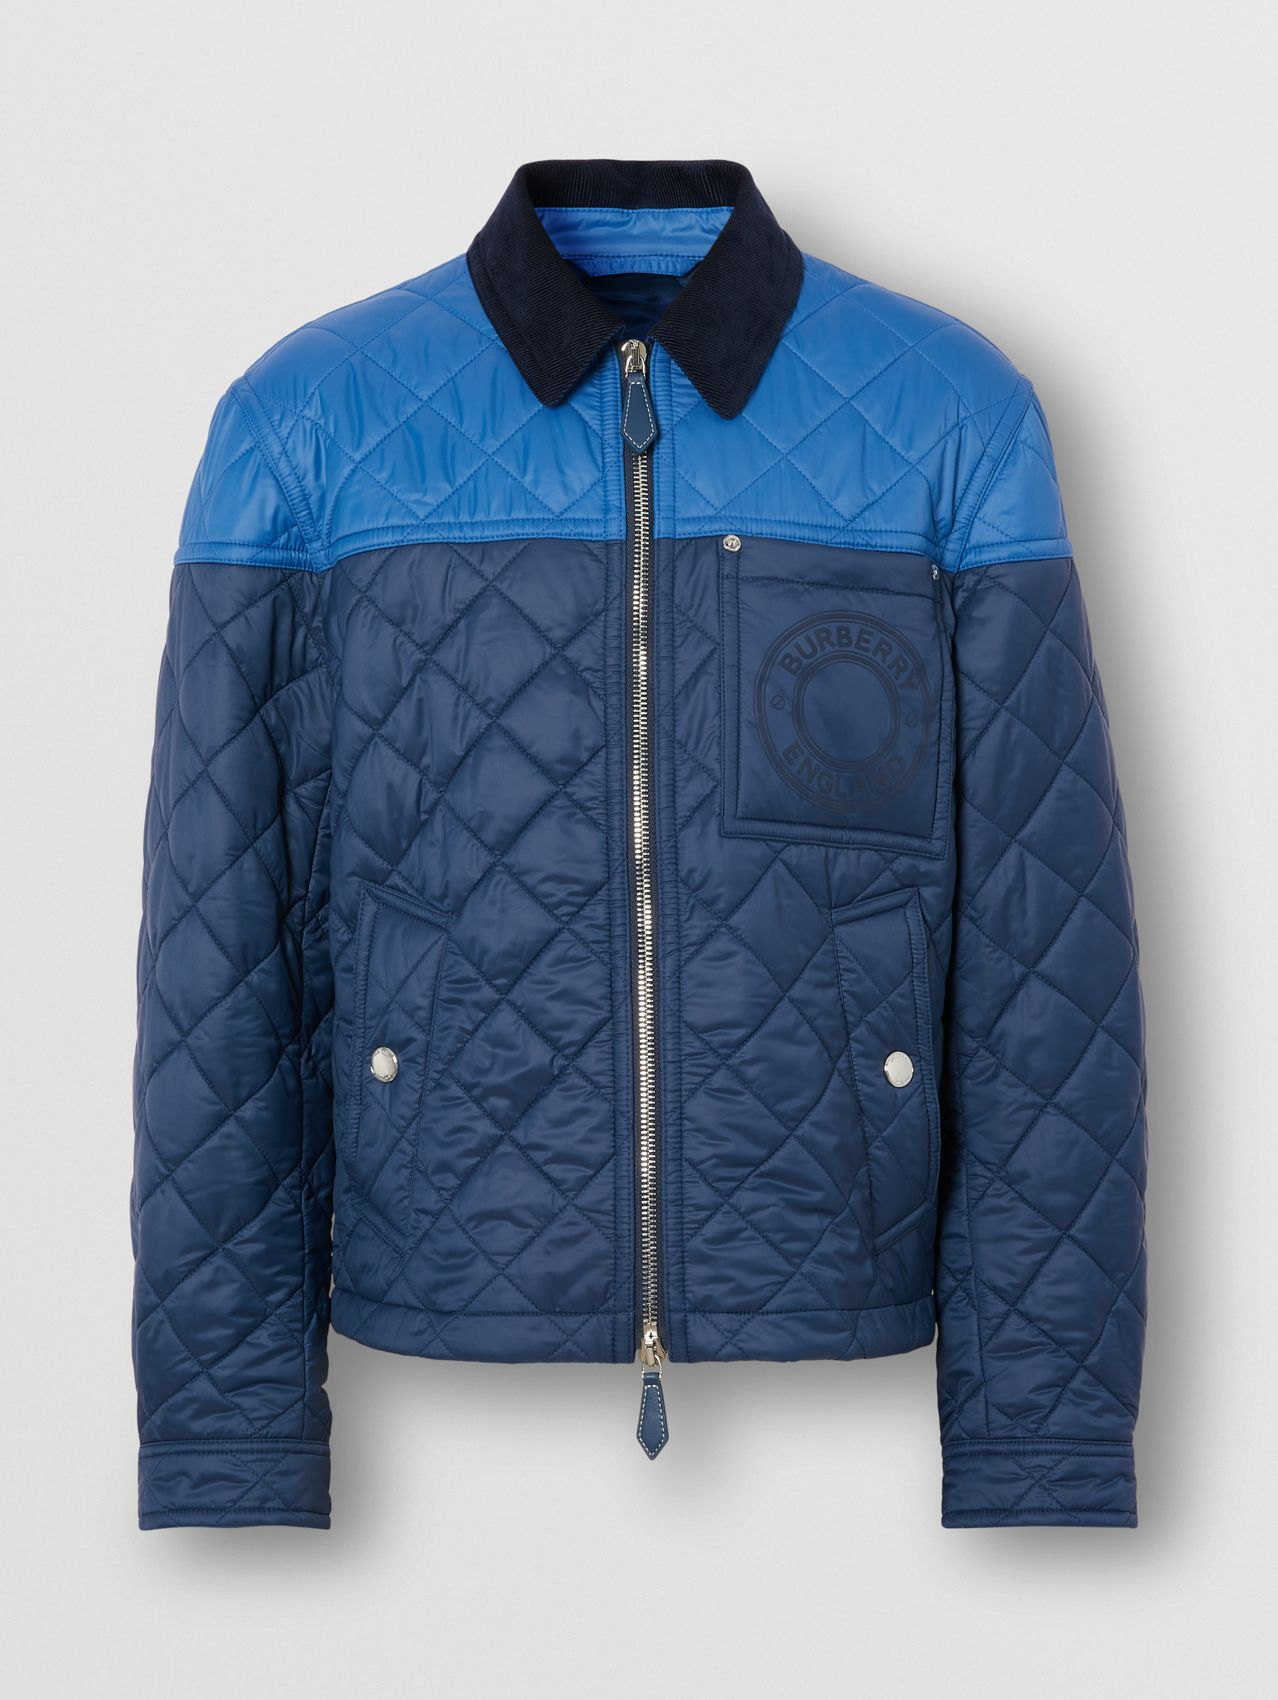 Harrington-Jacke aus wiederverwertetem Nylon in Colour-Blocking-Optik (Tintenblau)